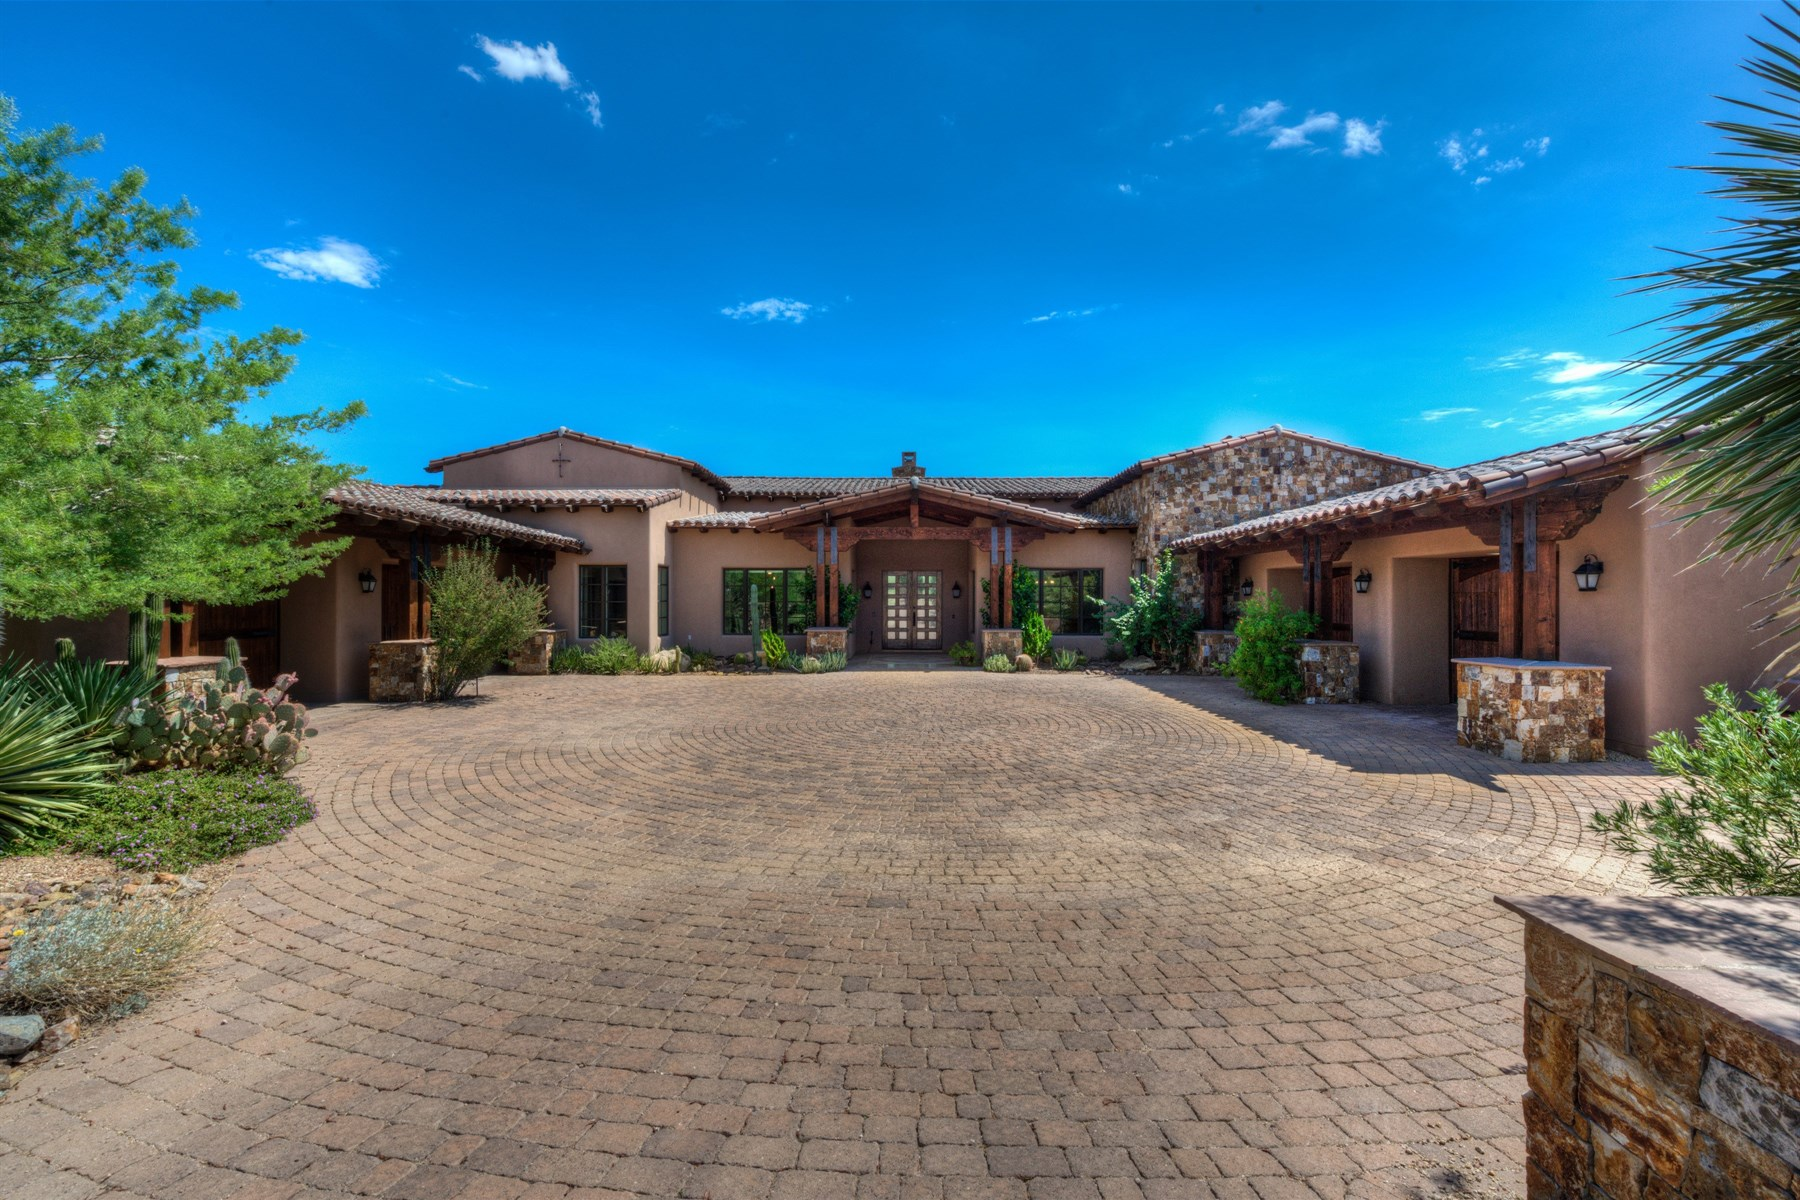 Einfamilienhaus für Verkauf beim Elegant Ranch-Inspired Home Located In Guard-Gated Whisper Rock Estates 8427 E Homestead Circle Scottsdale, Arizona, 85266 Vereinigte Staaten